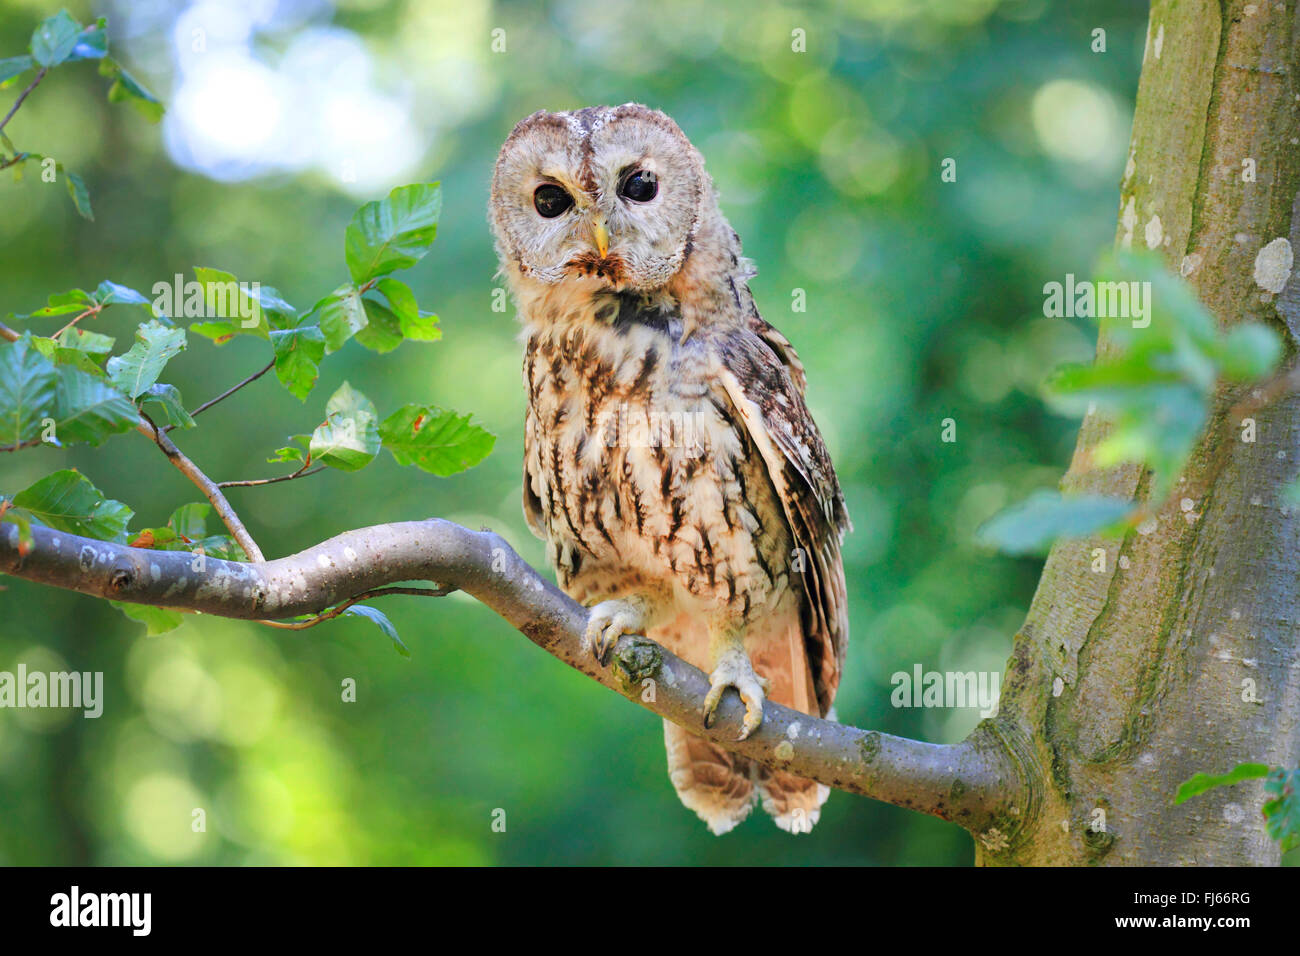 Eurasian tawny owl (Strix aluco), sits on a branch, Germany - Stock Image